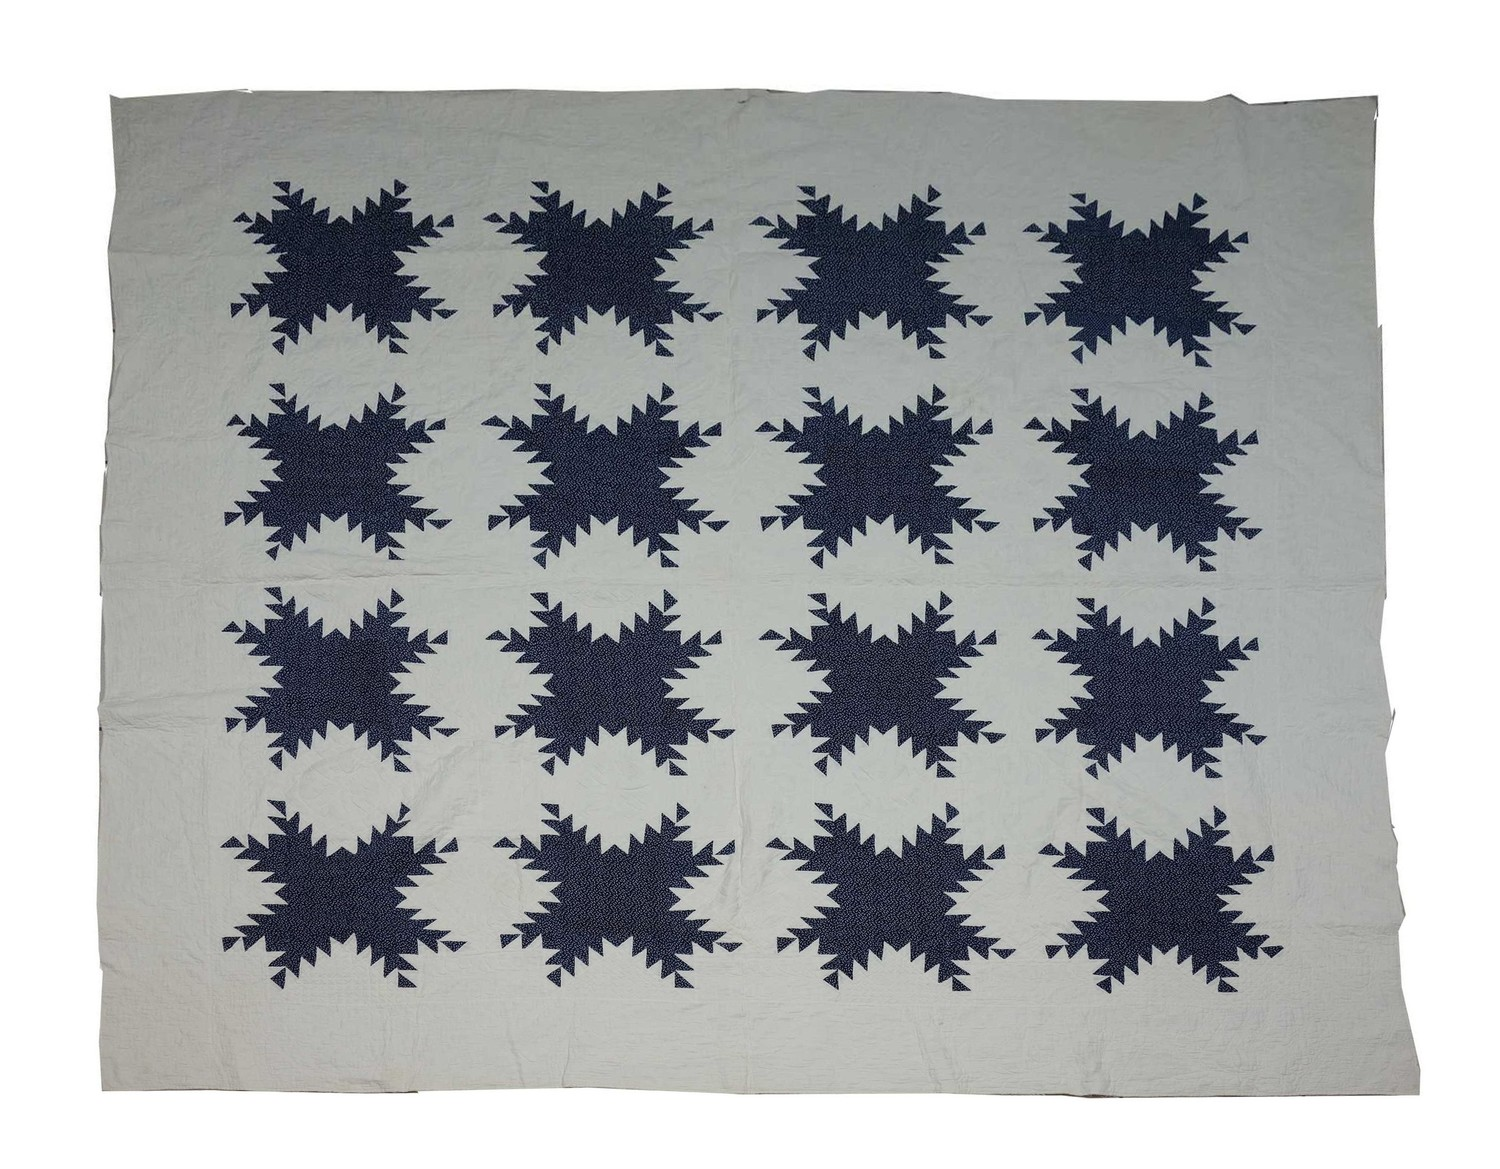 Feathered star block quilt, c. 1830, USA (TRC 2018.2630).